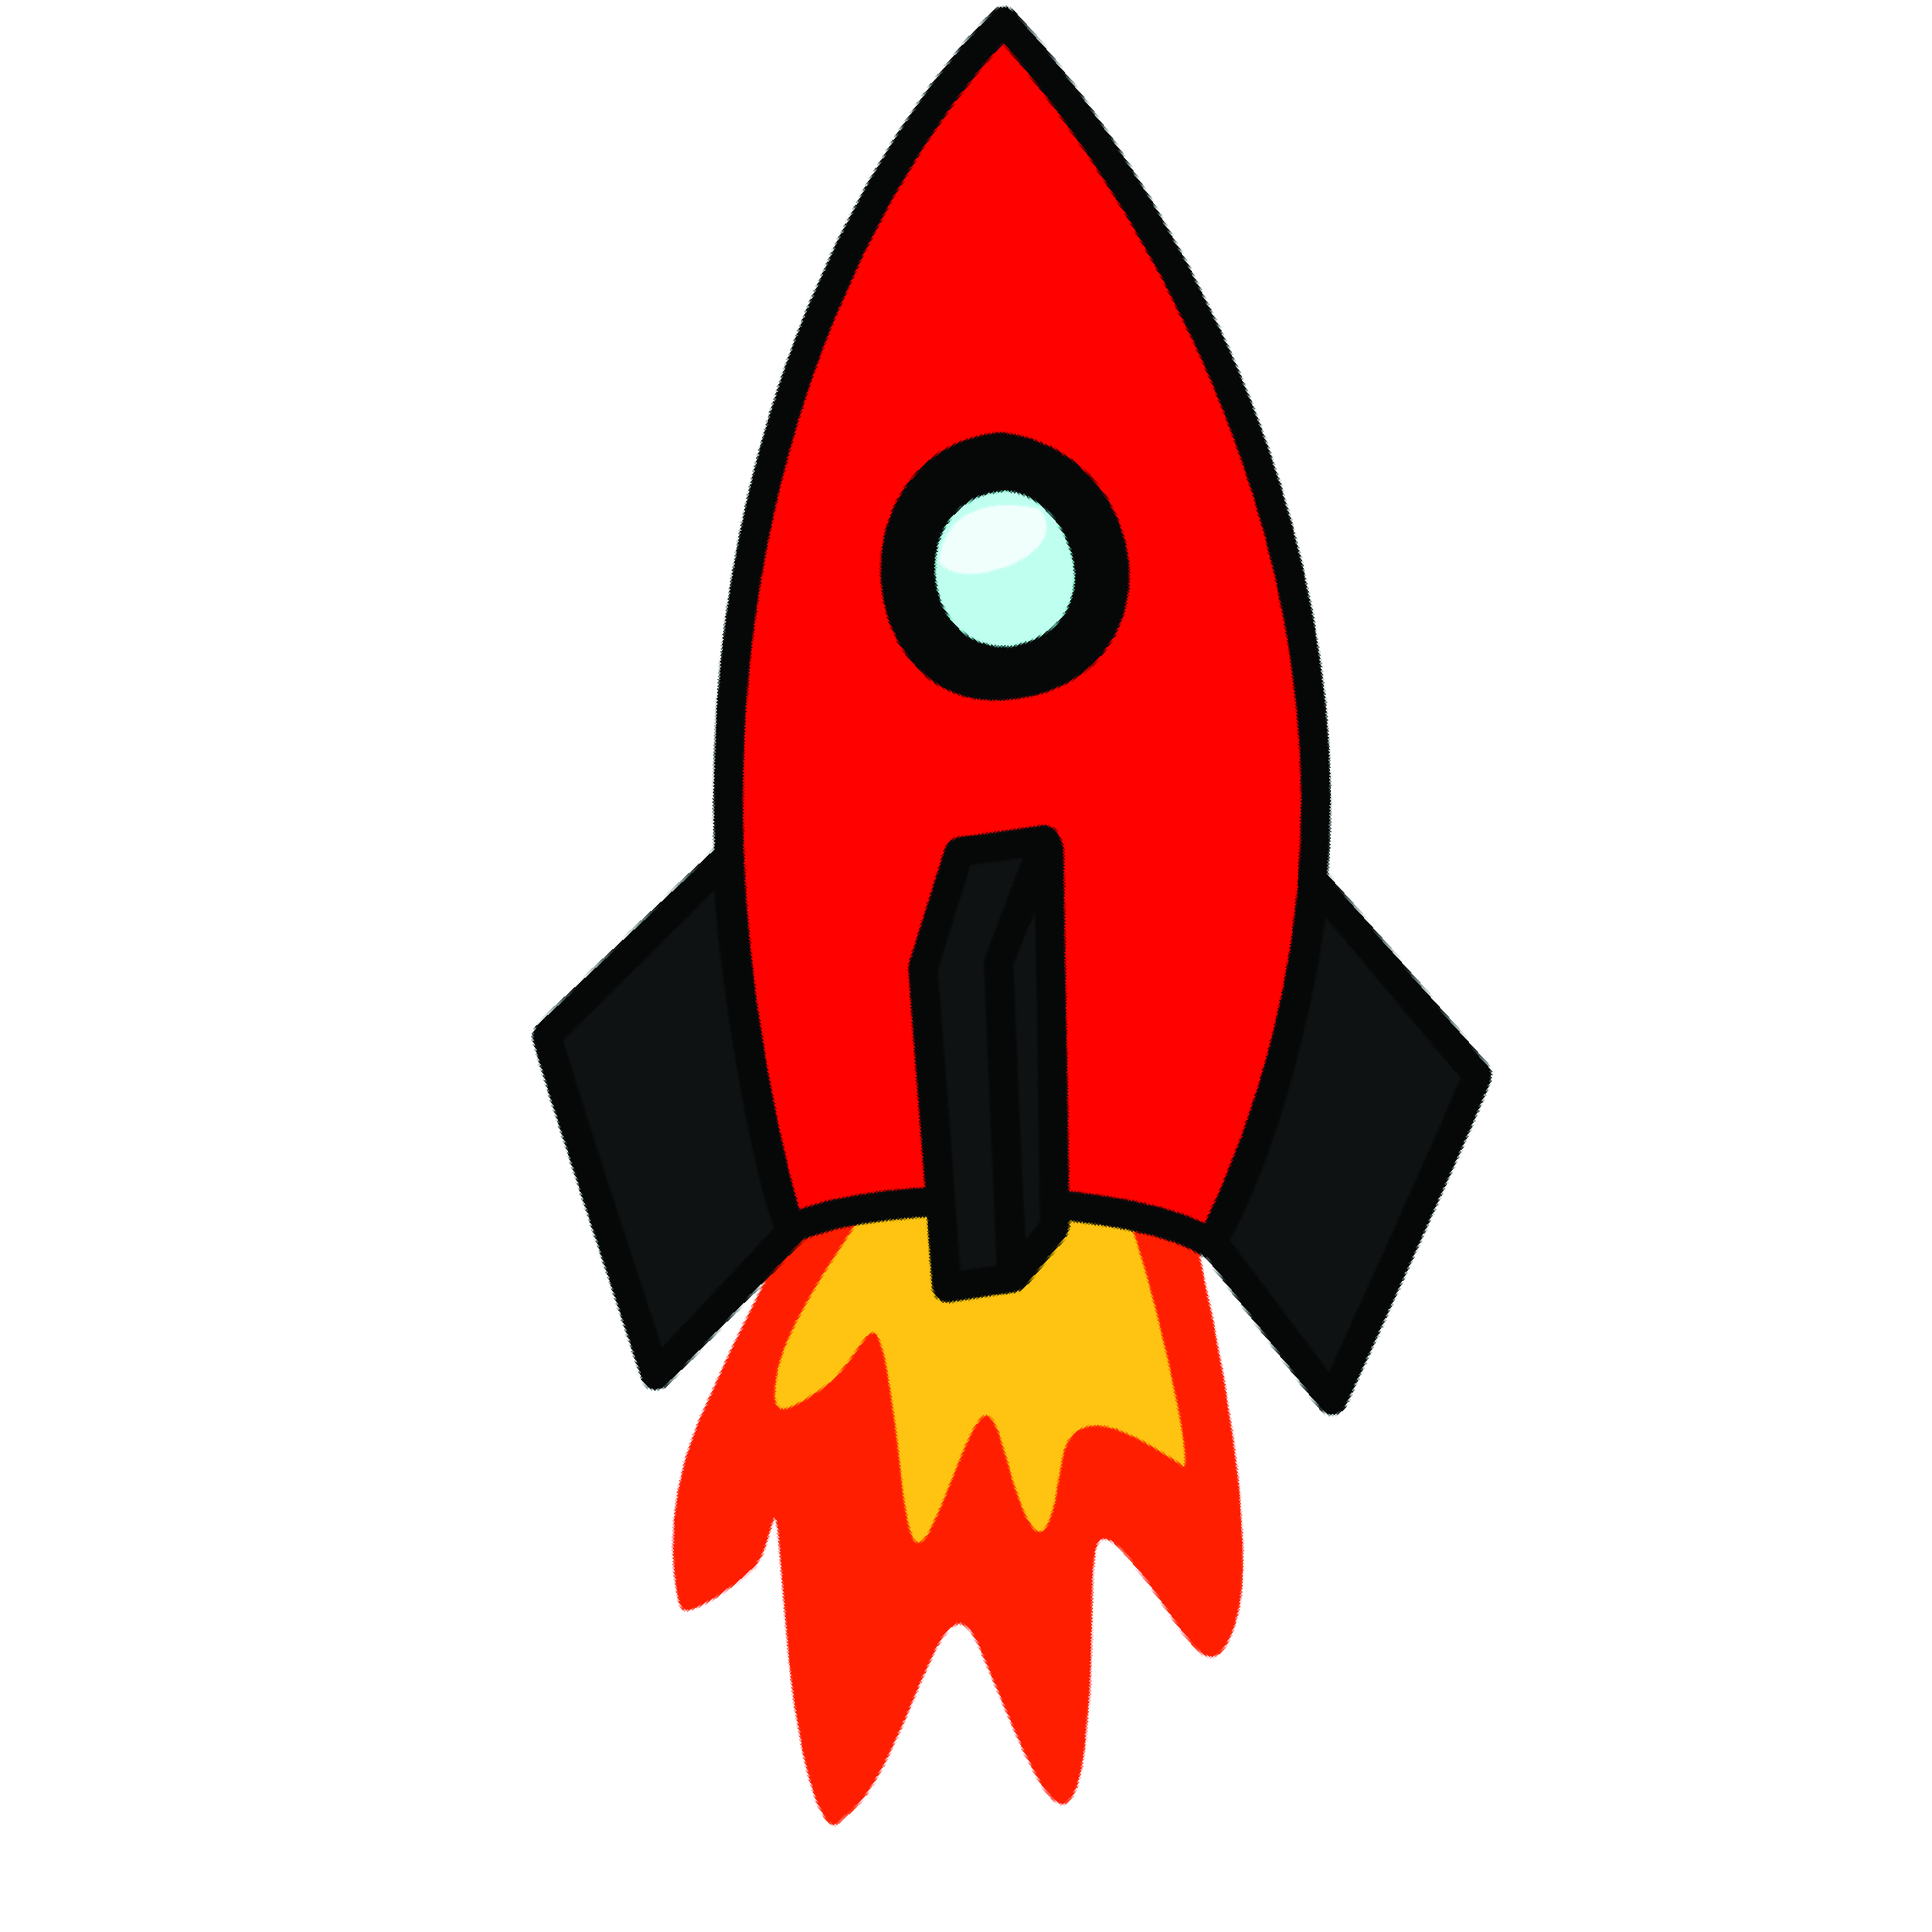 CANCELED - Adult Maker Night: Relax! It's Just Rocket Science